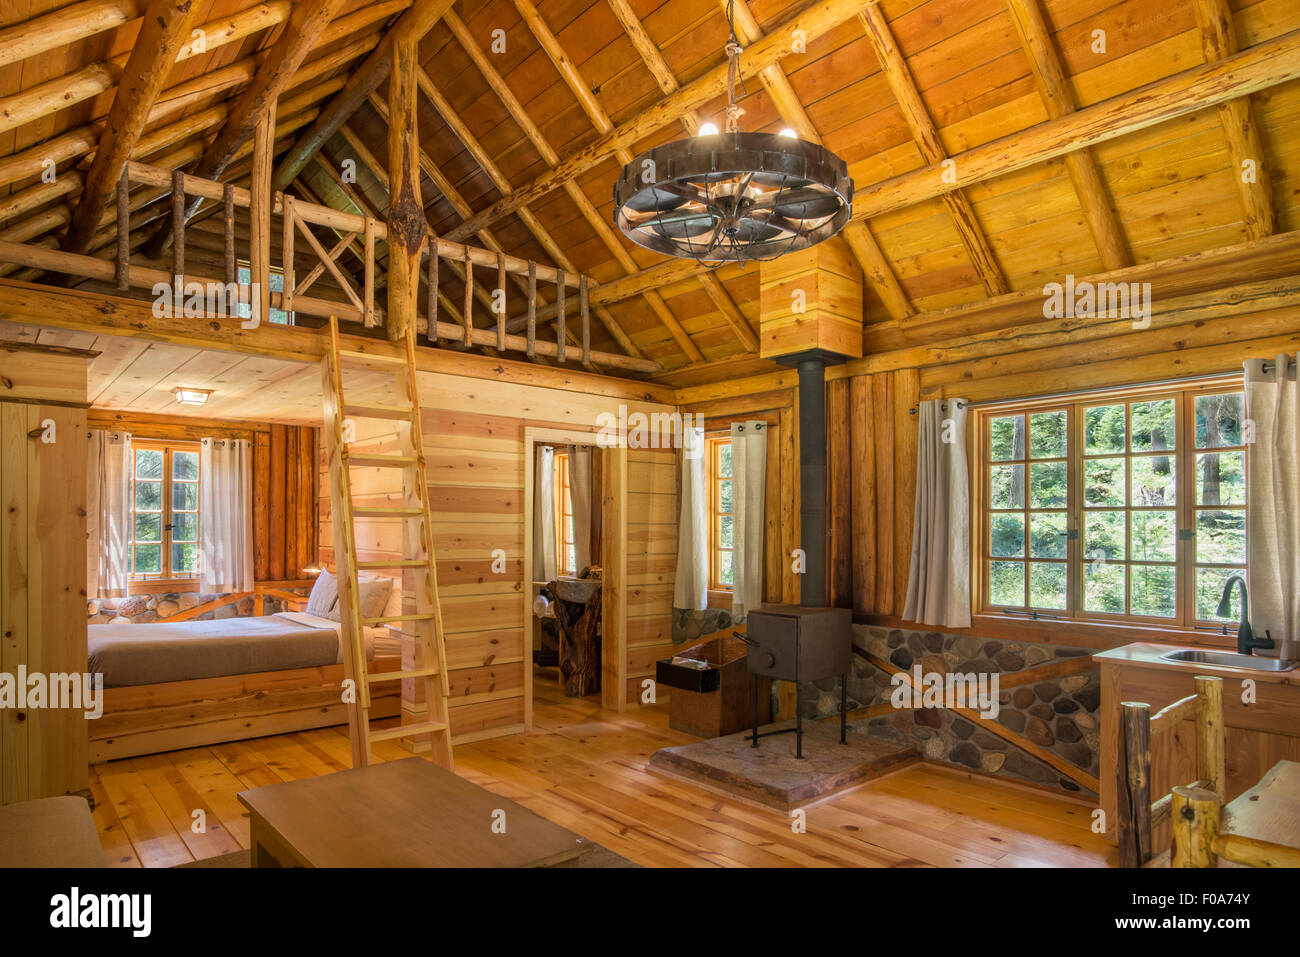 Interior of a log cabin at the Minam River Lodge in Oregon's Wallowa Mountains. - Stock Image